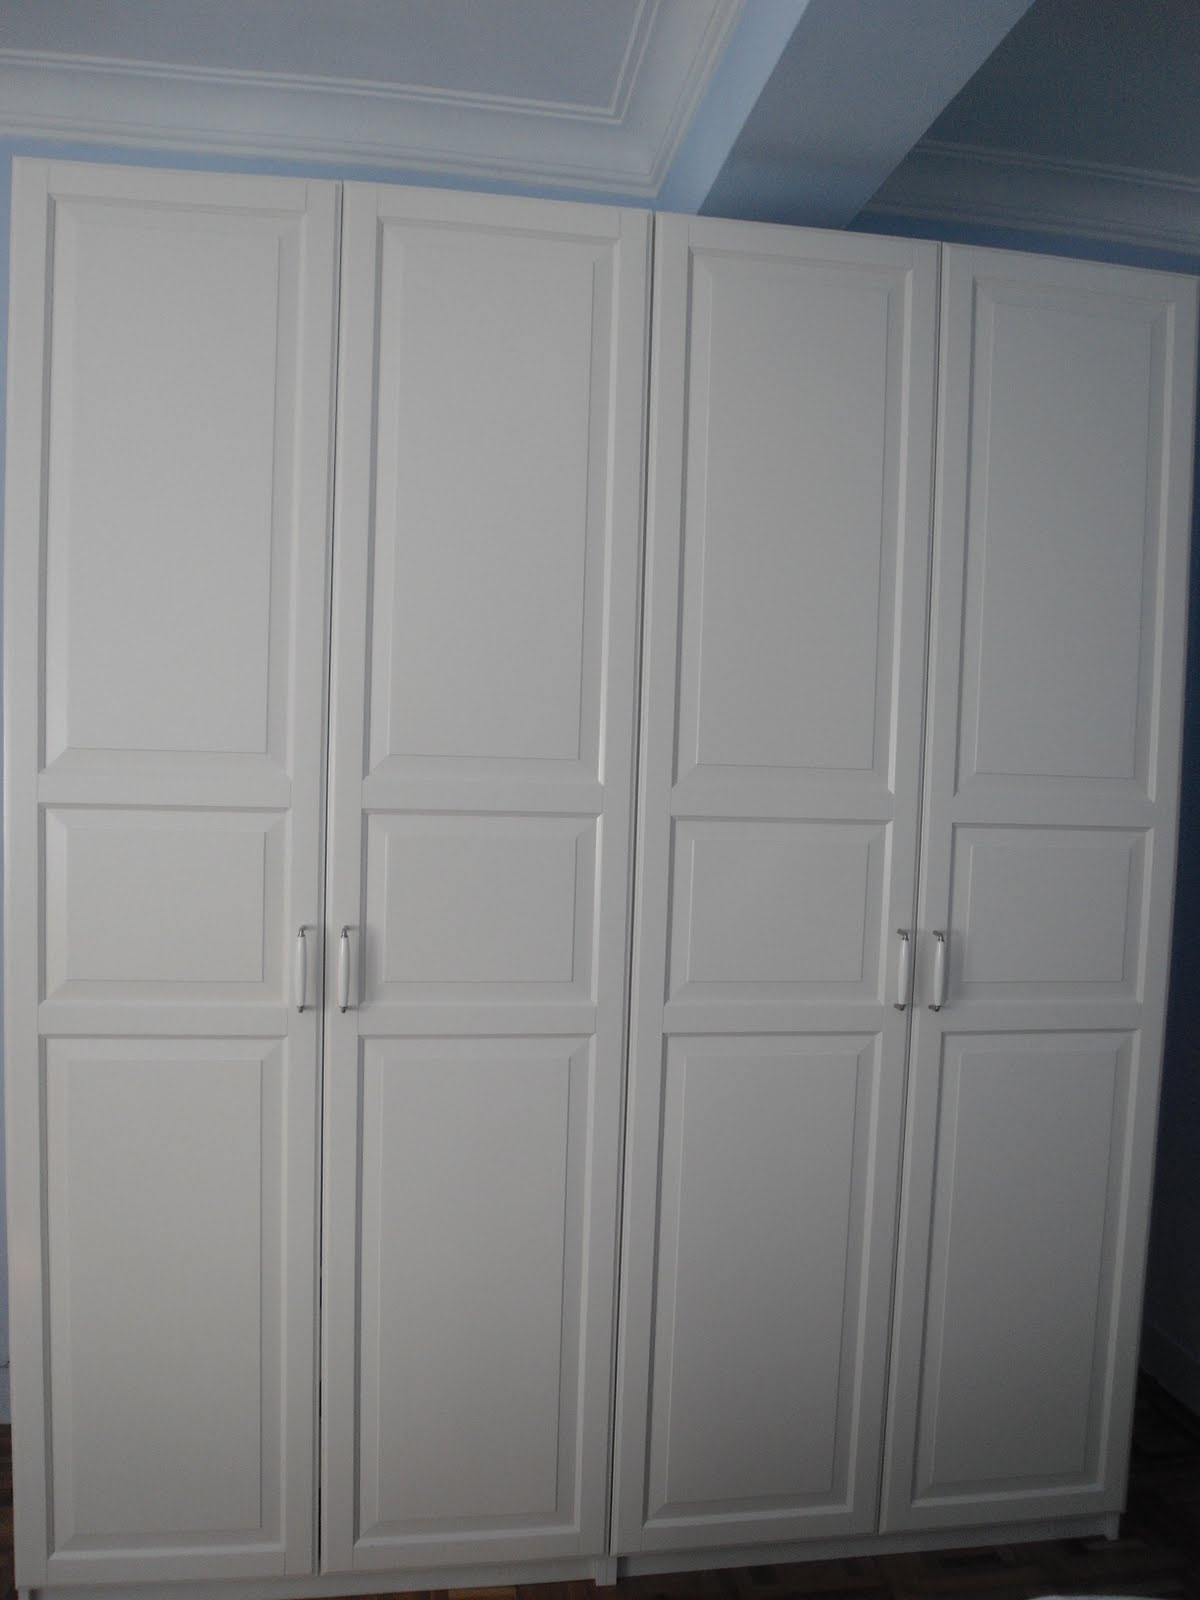 1000 images about closets on pinterest puertas closet for Armarios ikea